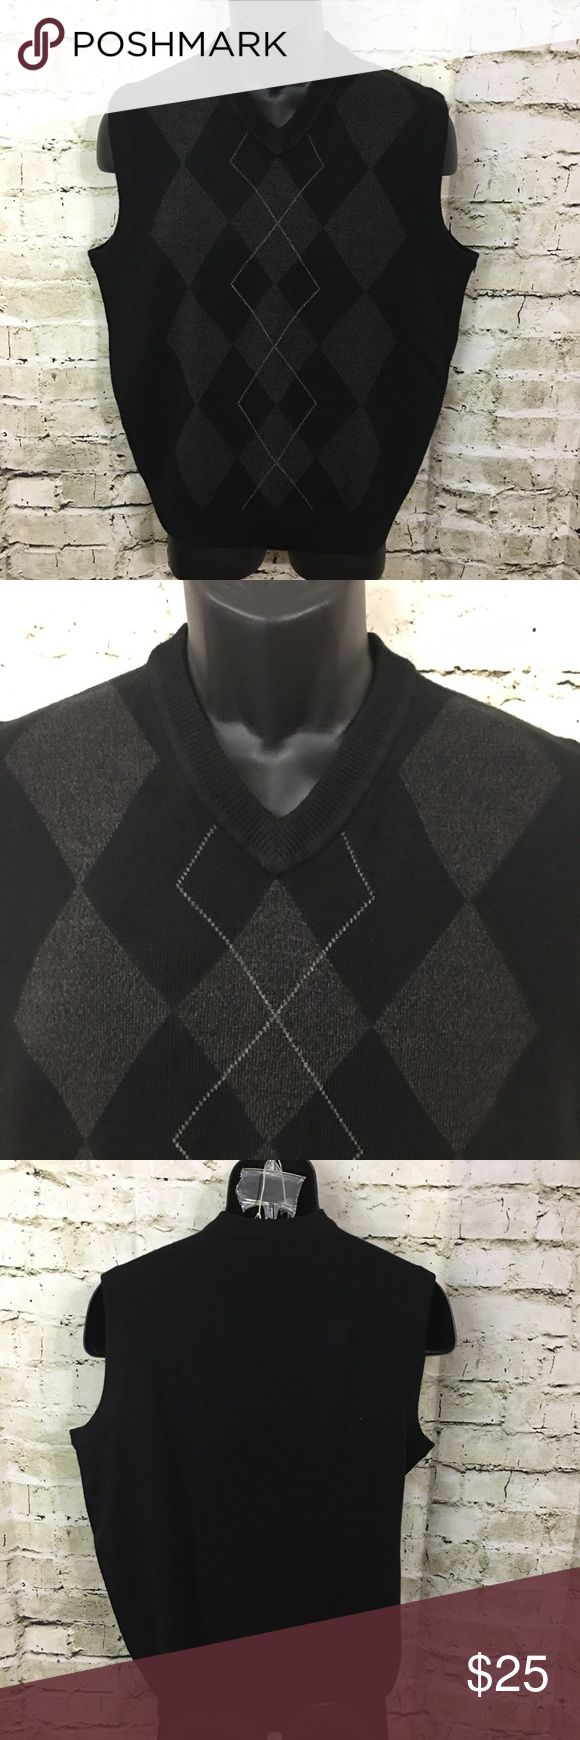 "Dockers Black/ Gray Argyle Sweater Best Size Med This is a Men's Dockers Black/ Gray Argyle Sweater Vest Shirt Size Medium. The measurements are as followed: Arm Pit to Arm Pit: 21"" Shoulder to Hemm: 25"" This shirt is still in excellent gently used condition. Please take a look at all photos for condition and if you have any questions feel free to ask. Dockers Sweaters V-Neck"